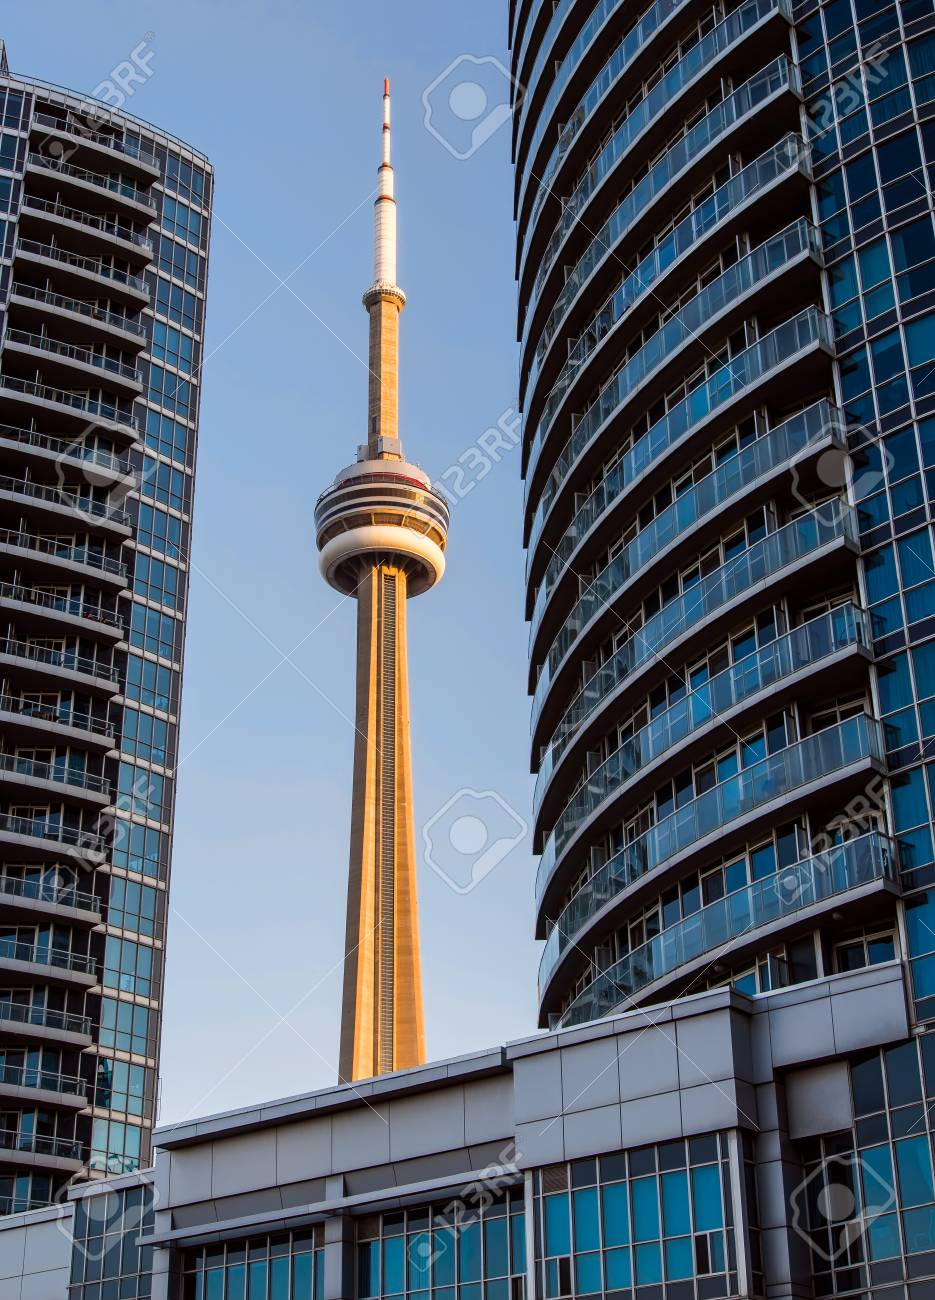 Building Frames Torontos CN Tower Stock Photo, Picture And Royalty ...